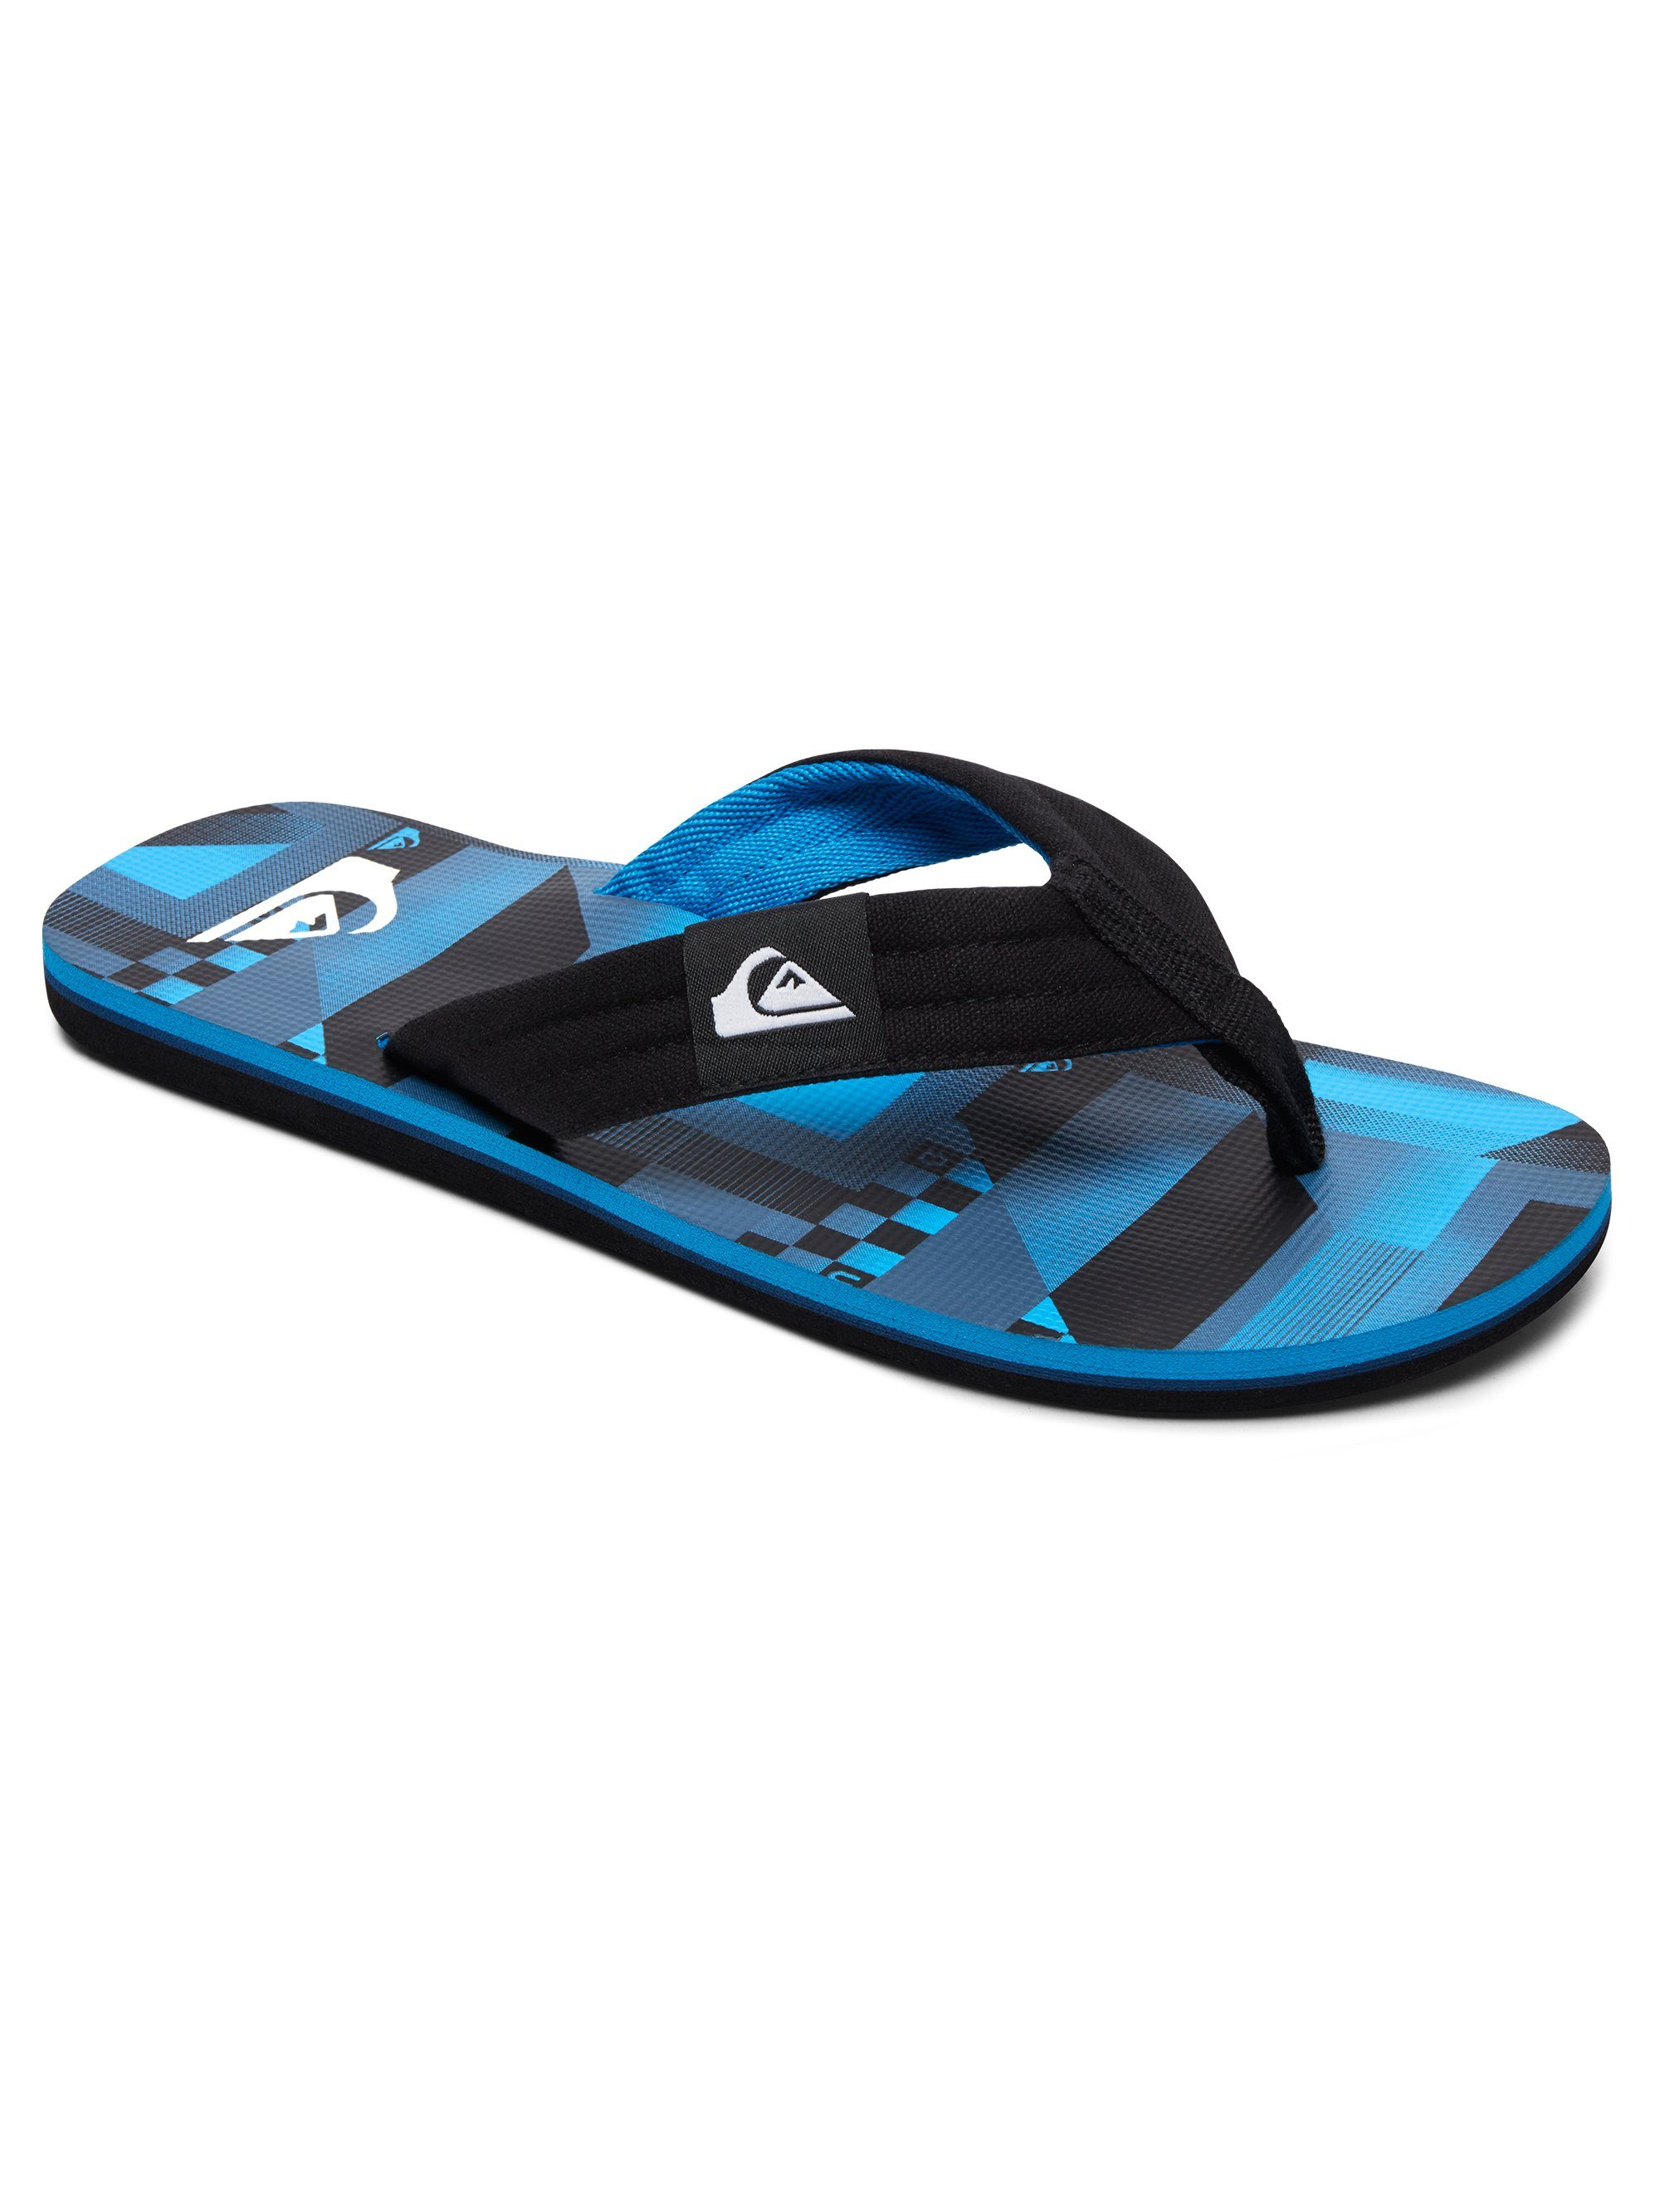 Quiksilver Zehentrenner Molokai Layback kaufen  Black#ft5_slash#blue#ft5_slash#black